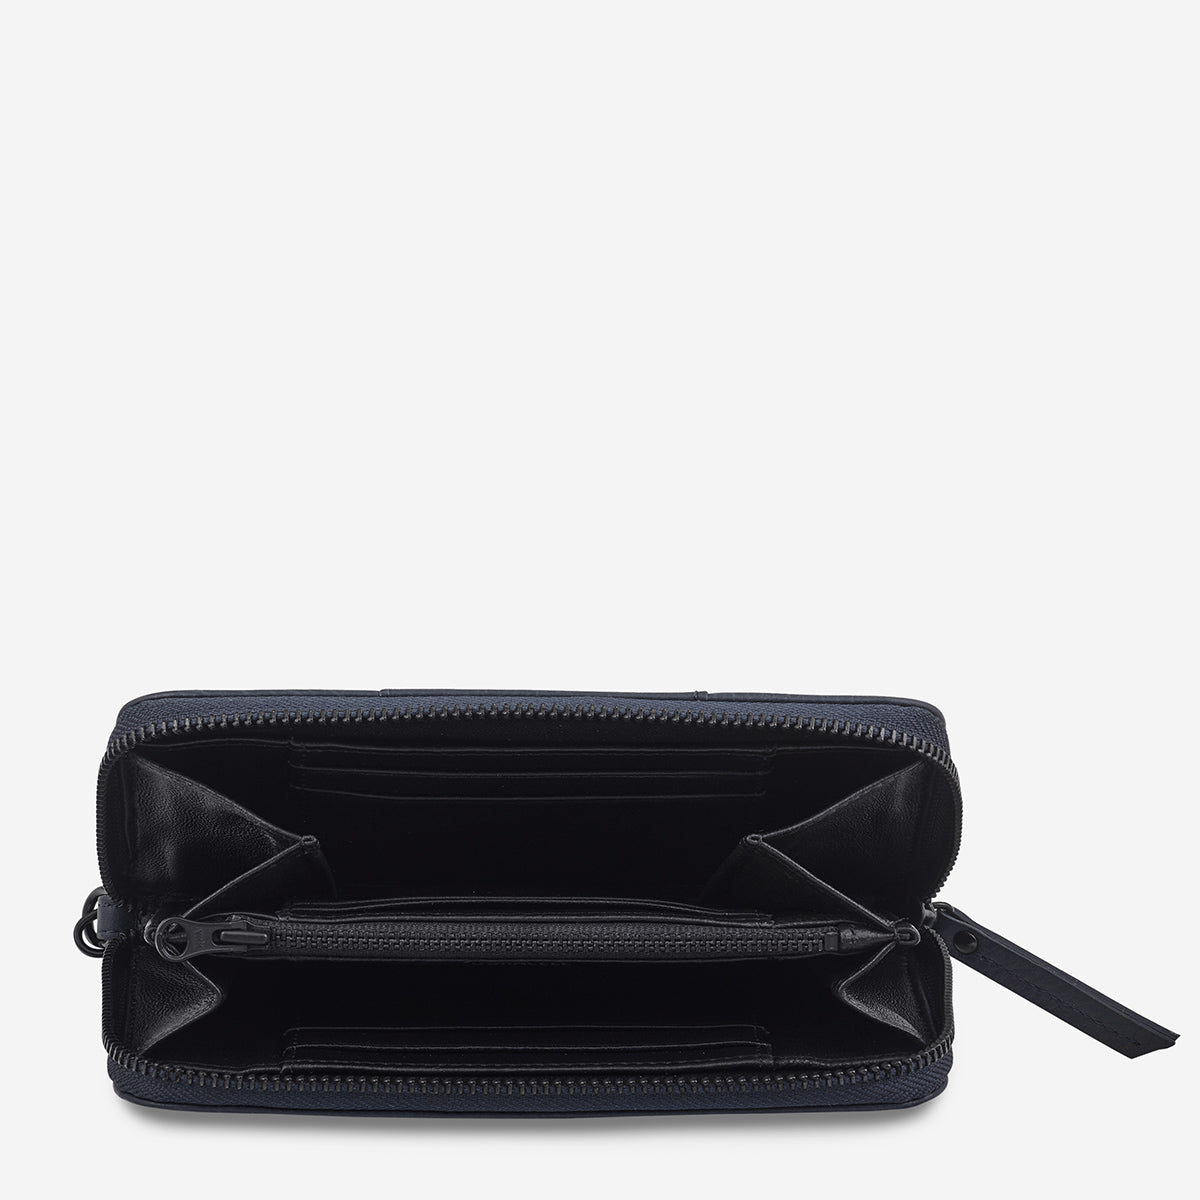 Status Anxiety Moving On Women's Leather Wallet - Navy Blue